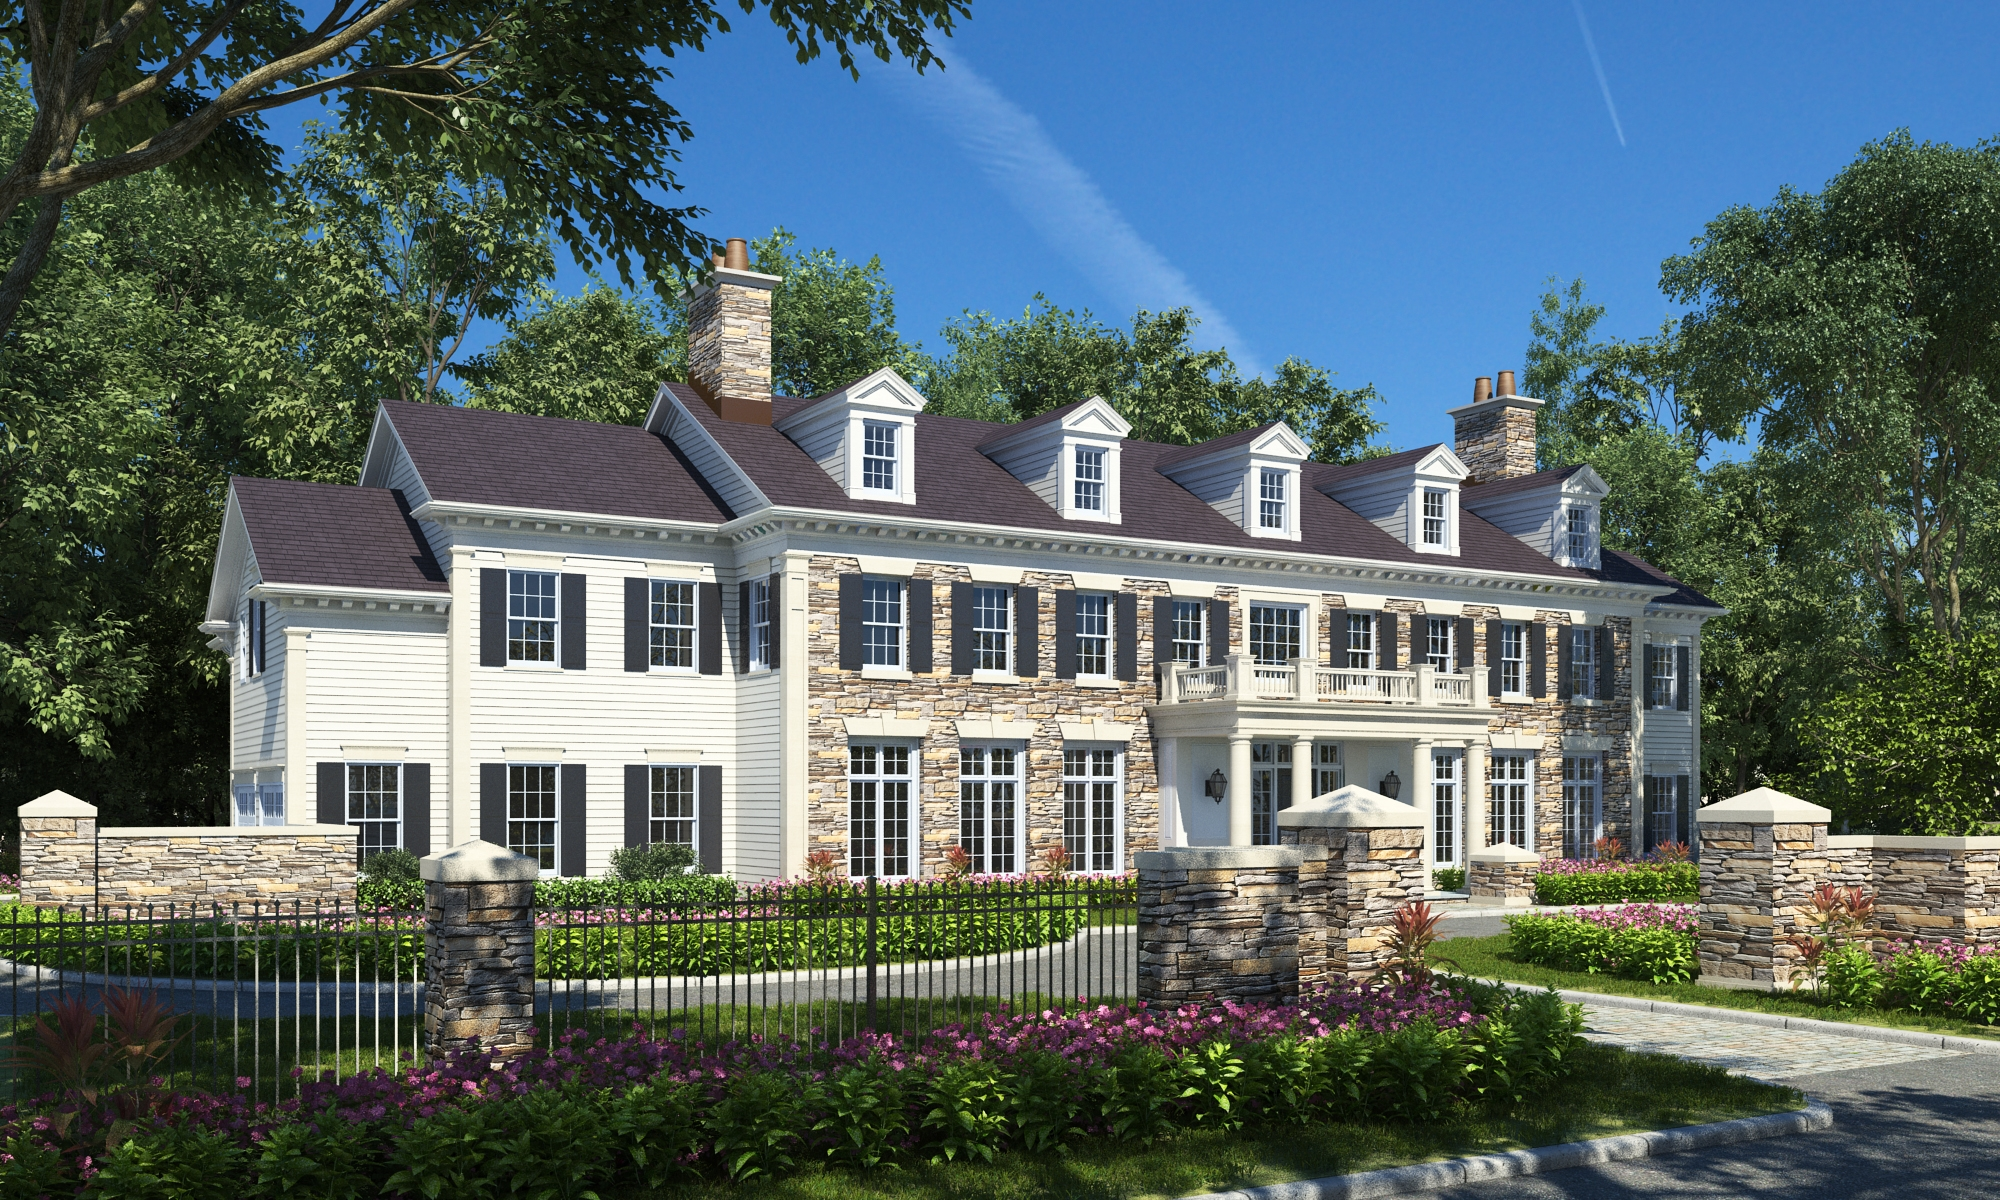 Single Family Home for Sale at Elegant New Luxury Construction 27 Murray Hill Road Scarsdale, New York, 10583 United States